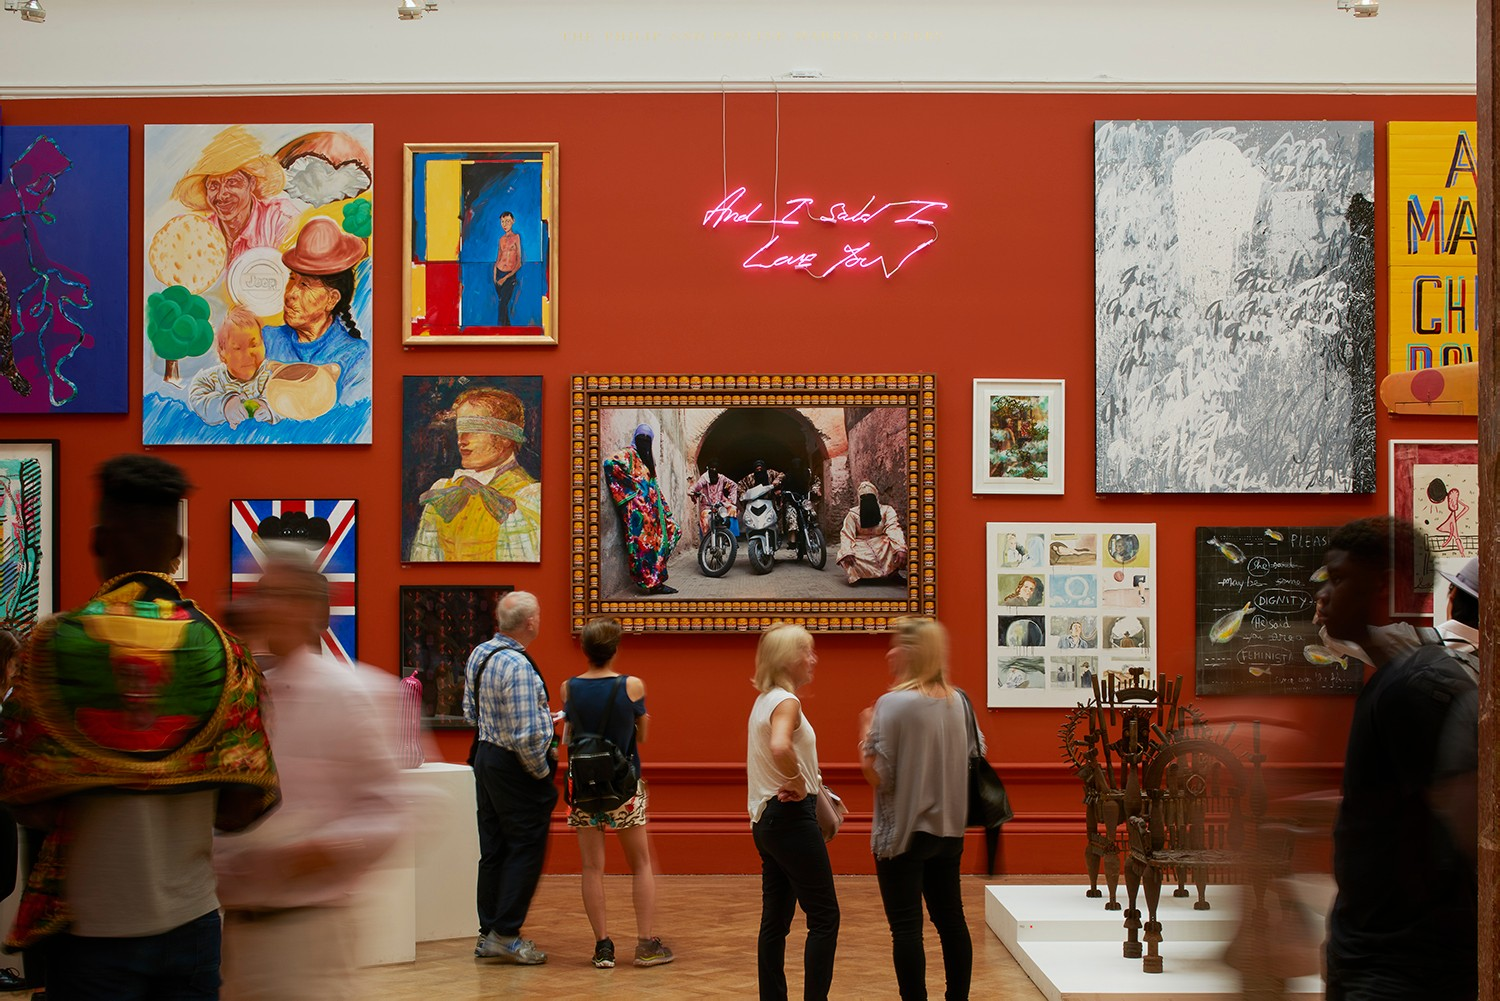 Installation view of the 2017 Summer Exhibition, 13 June – 20 August at the Royal Academy of Arts, London |Photo © James Harris